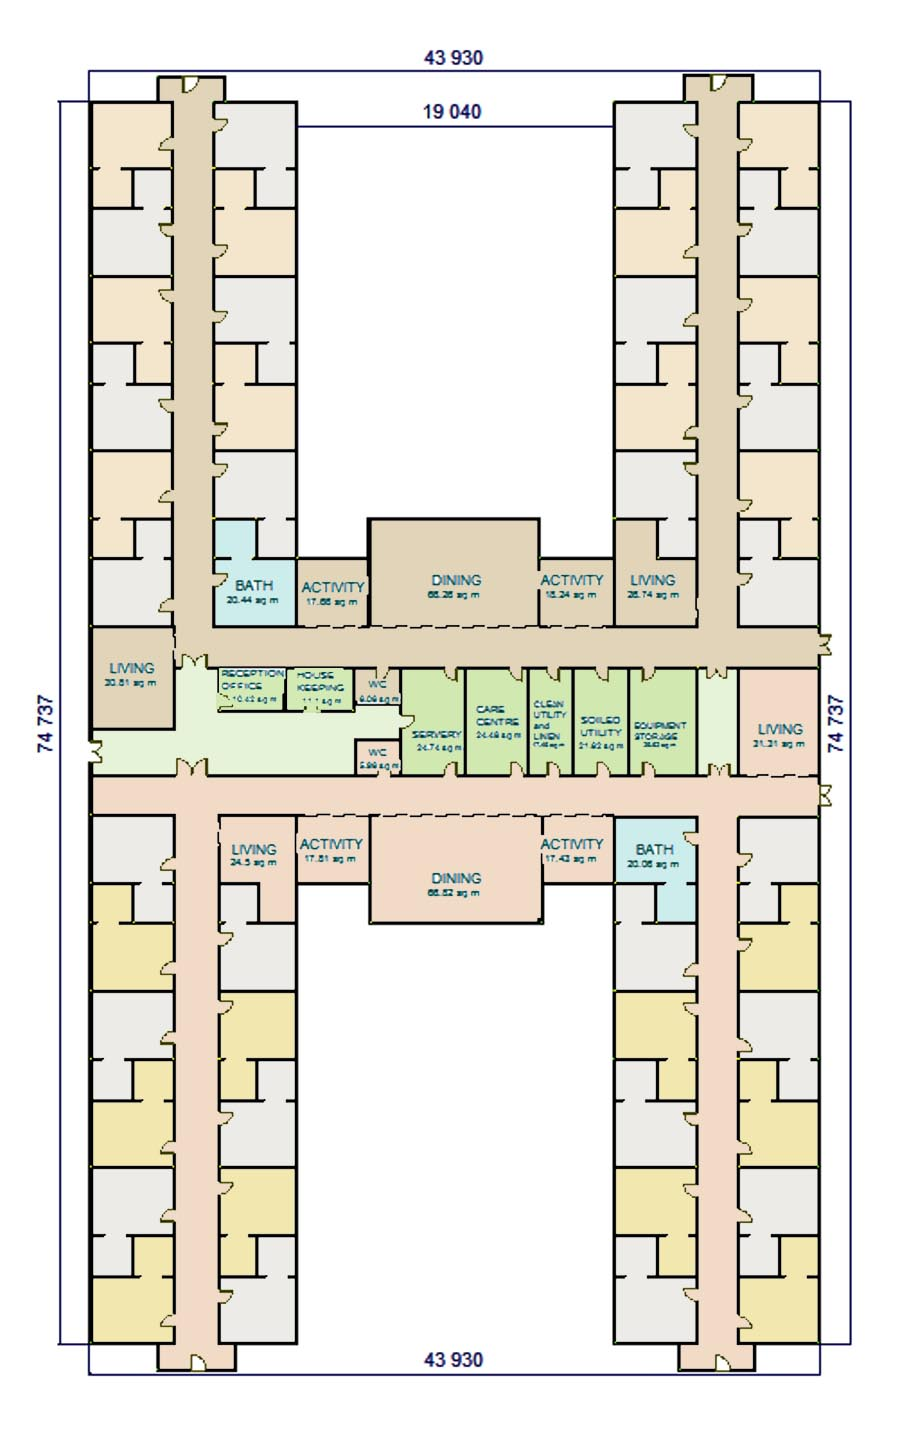 W A Benbow DEMENTIA DESIGN H SHAPE FACILITY LAYOUT